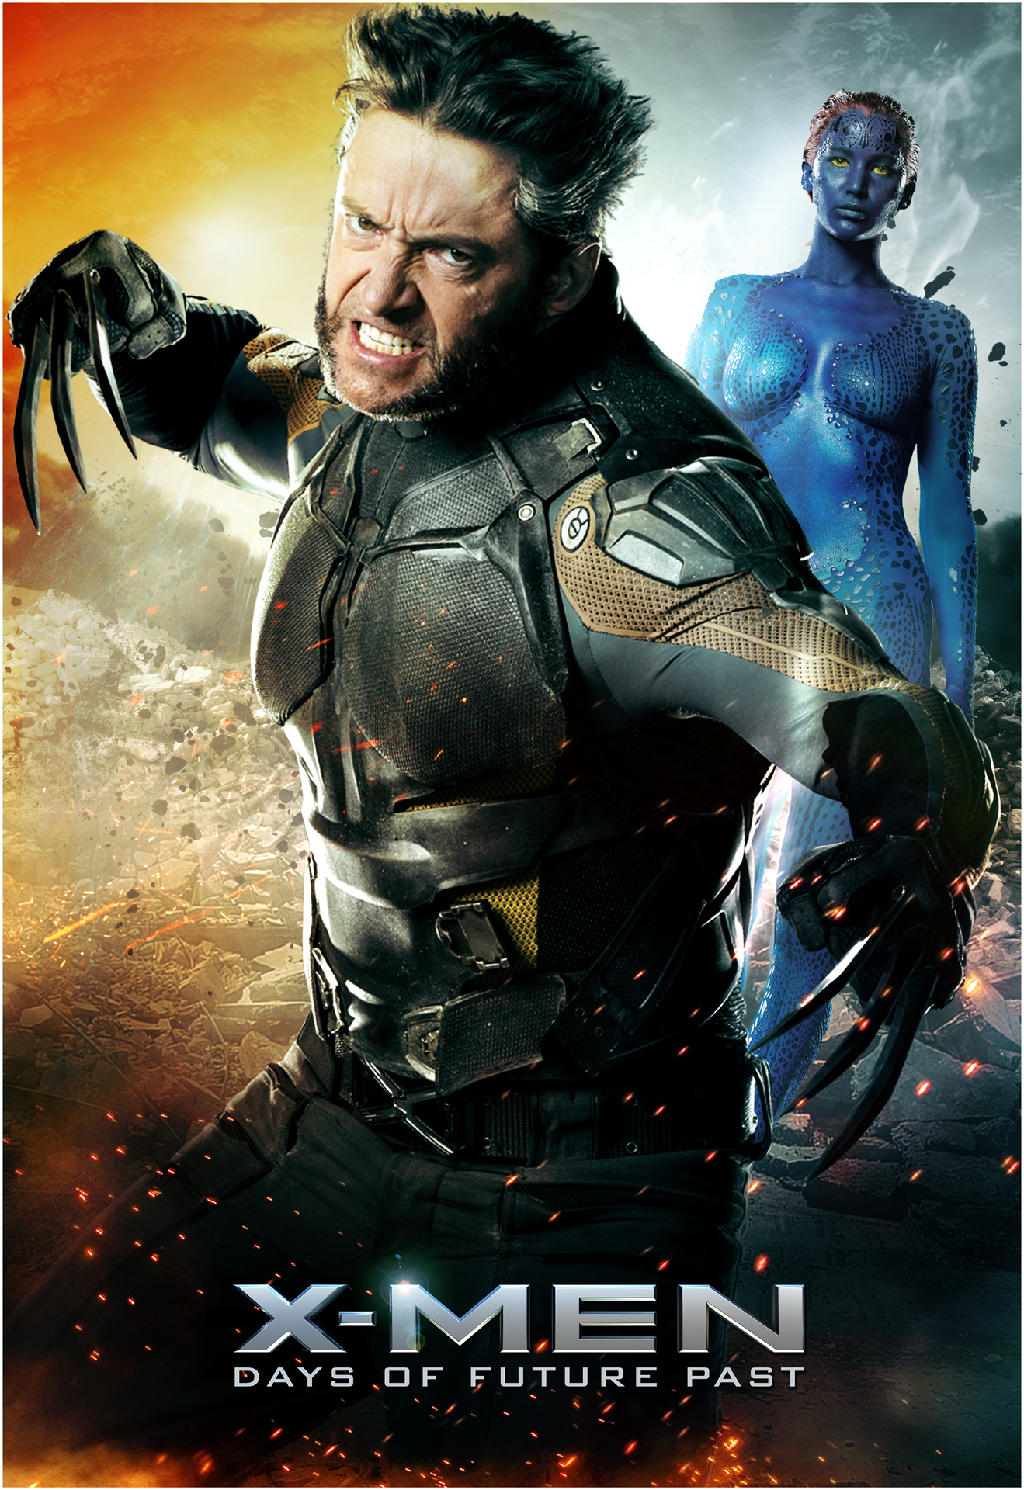 X-Men Days of Future Past-Official Poster Banner PROMO XLG-04ABRIL2014-11